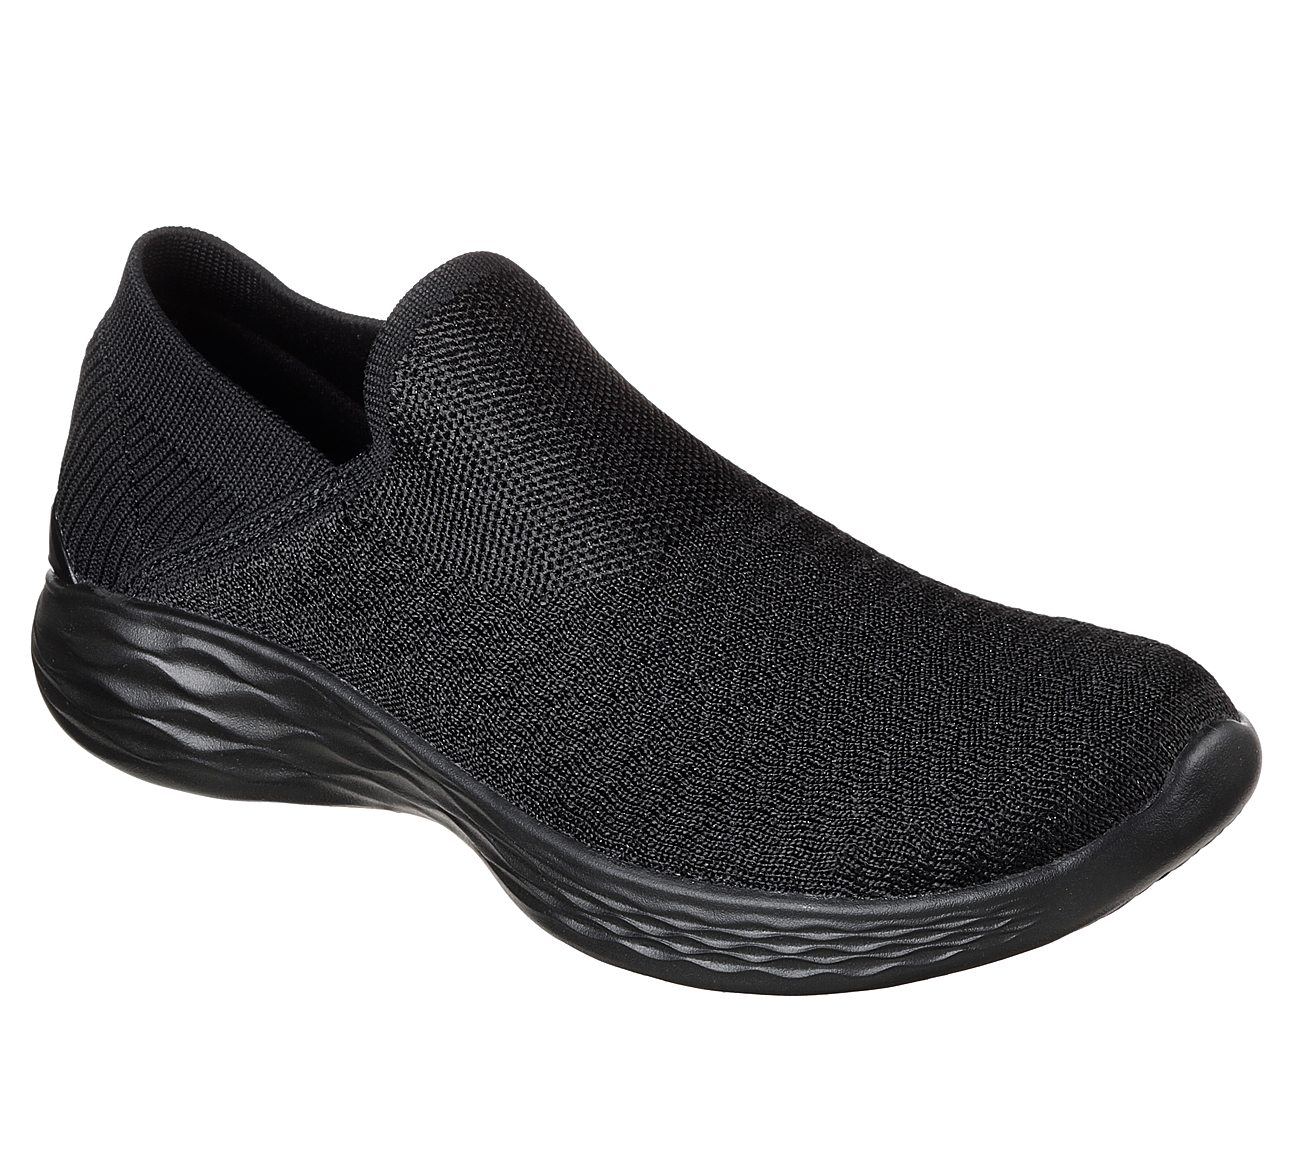 Transcend YOU by skechers Shoes